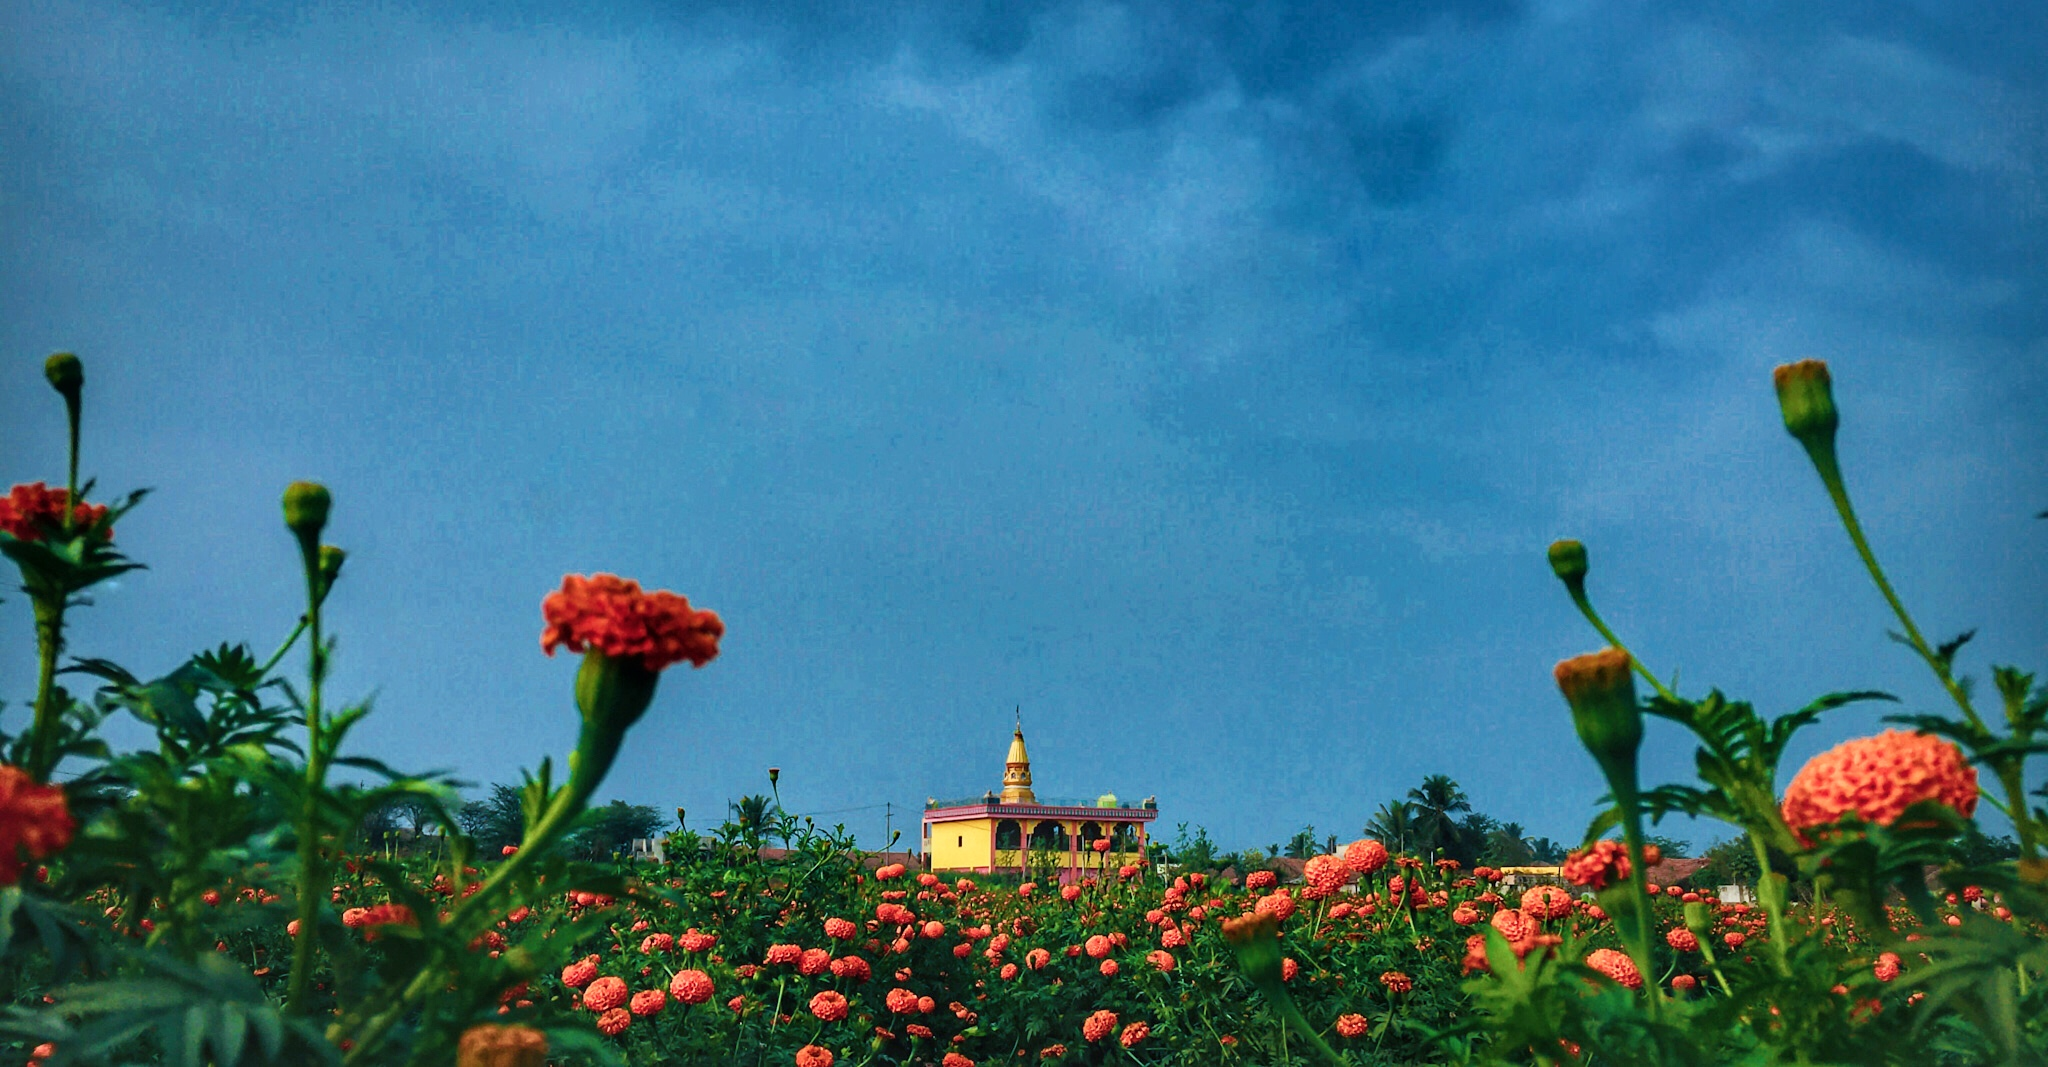 Temple and buds of flowers